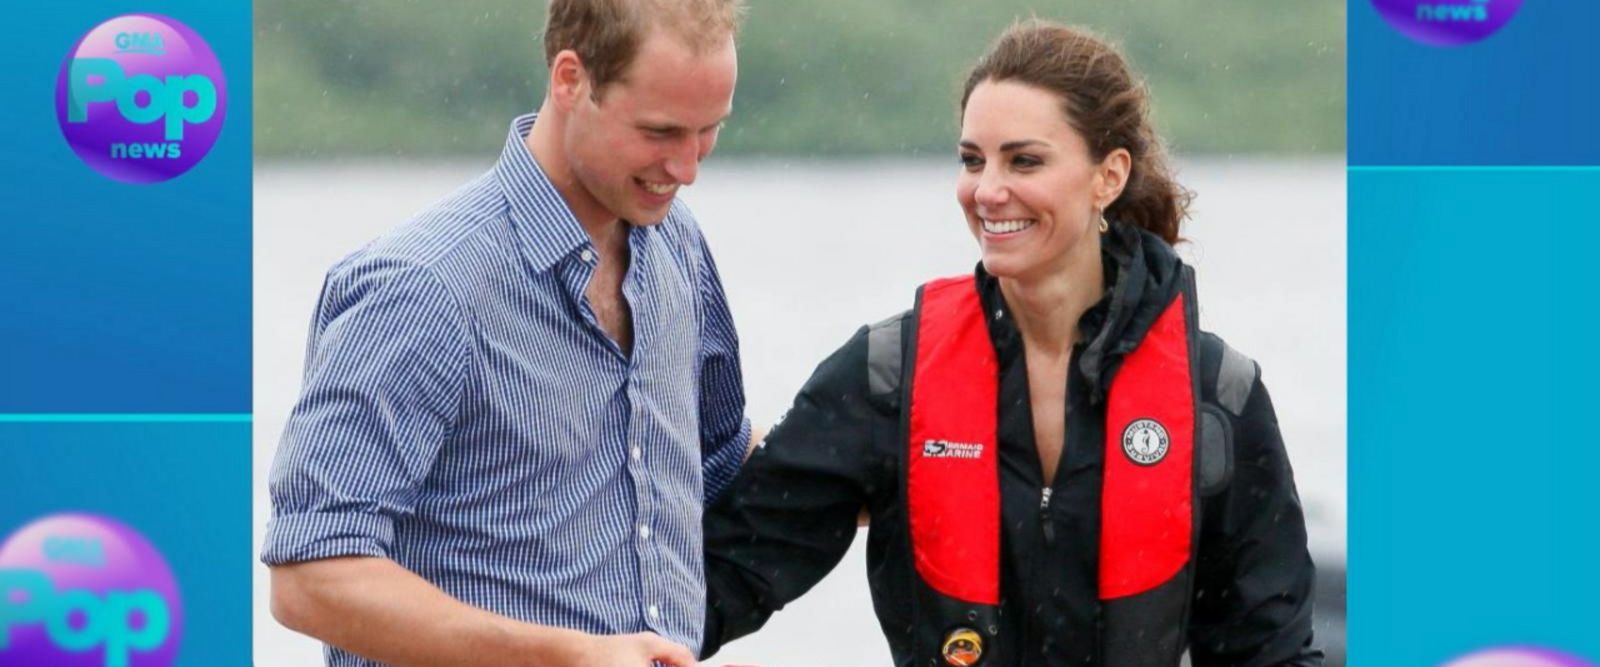 VIDEO: William and Kate face off in race on Germany's river Neckar